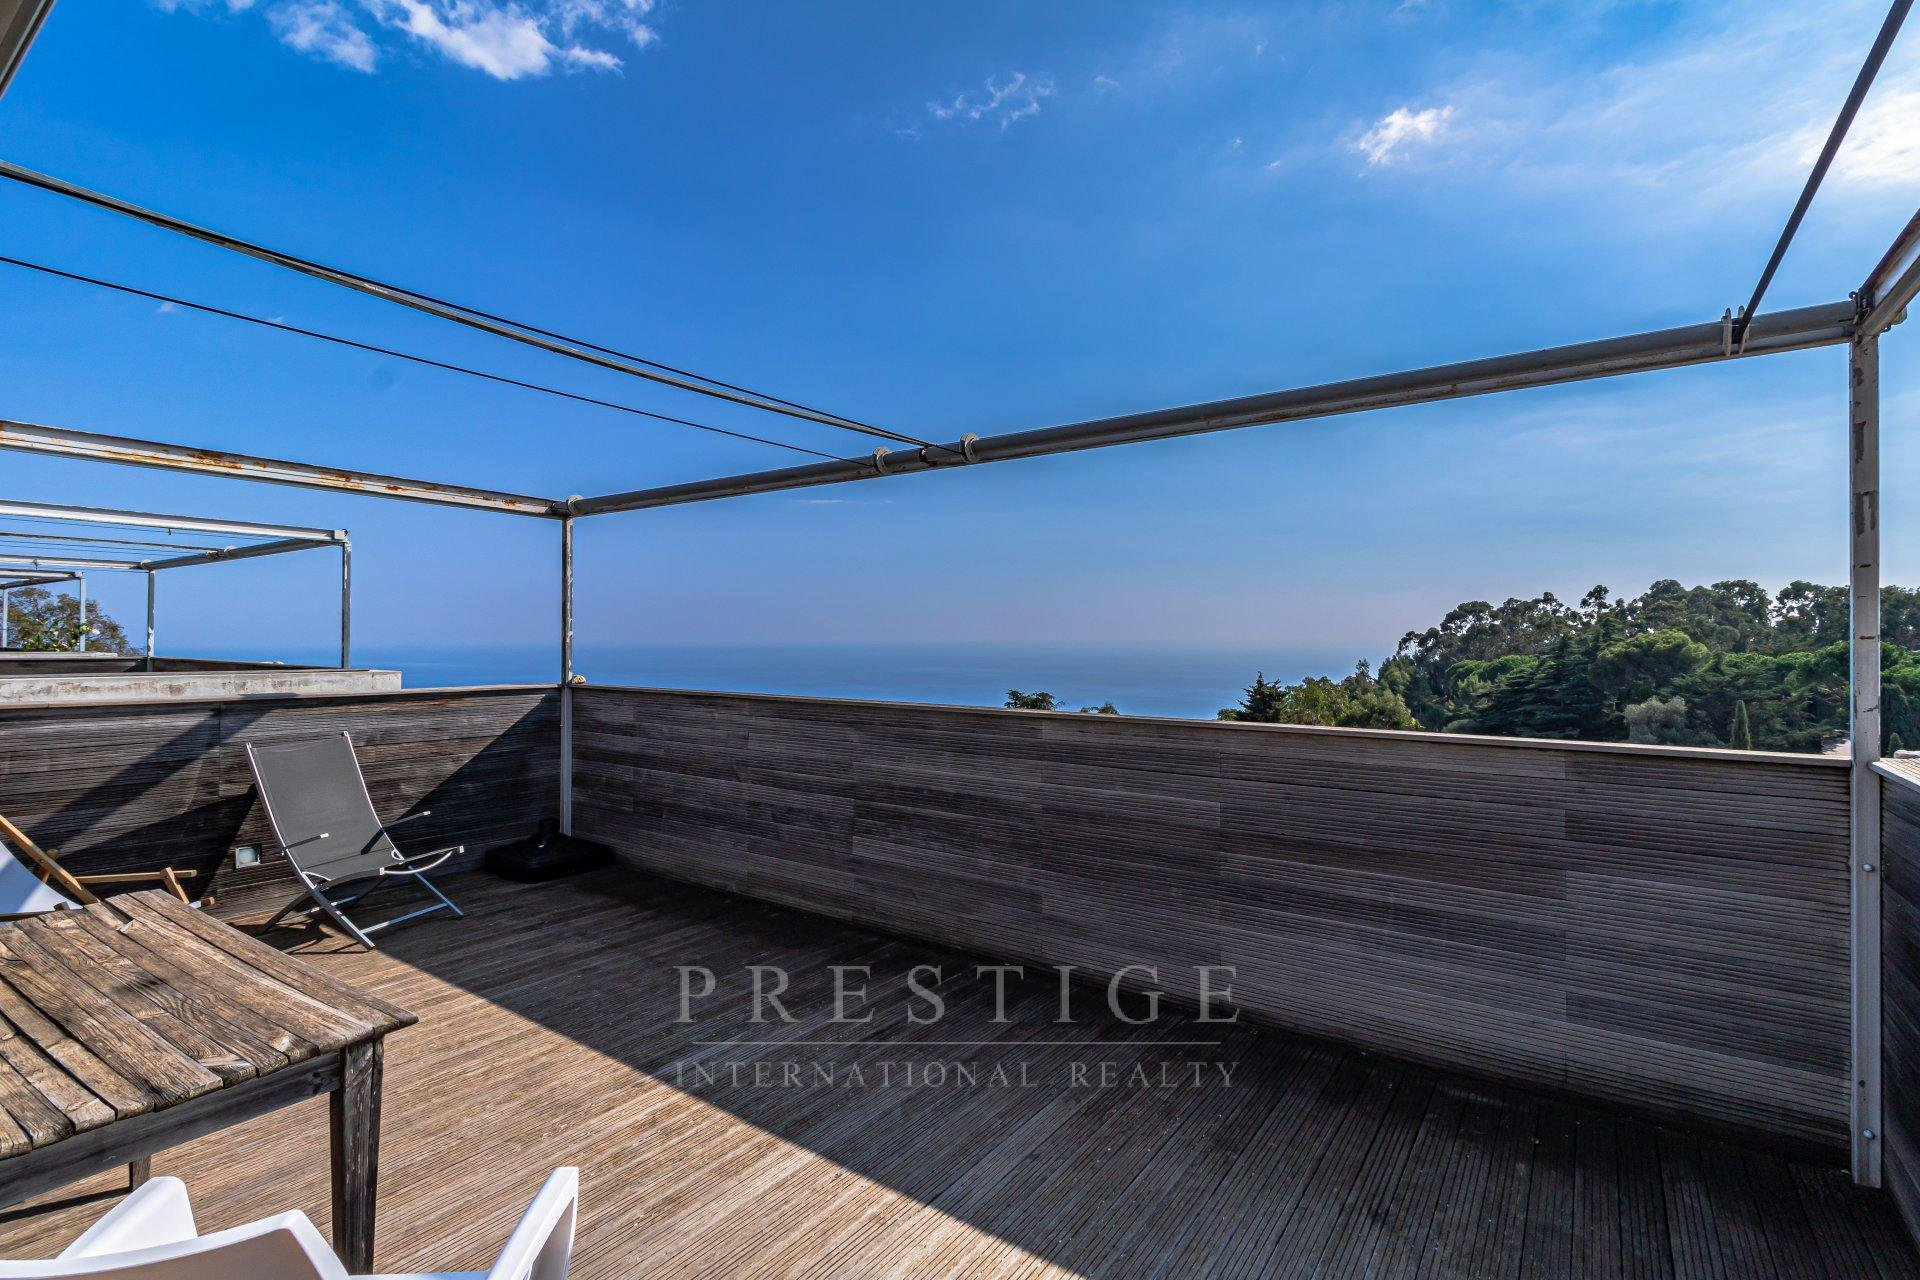 Eze, 1 bedroom flat sea view with roof terrace